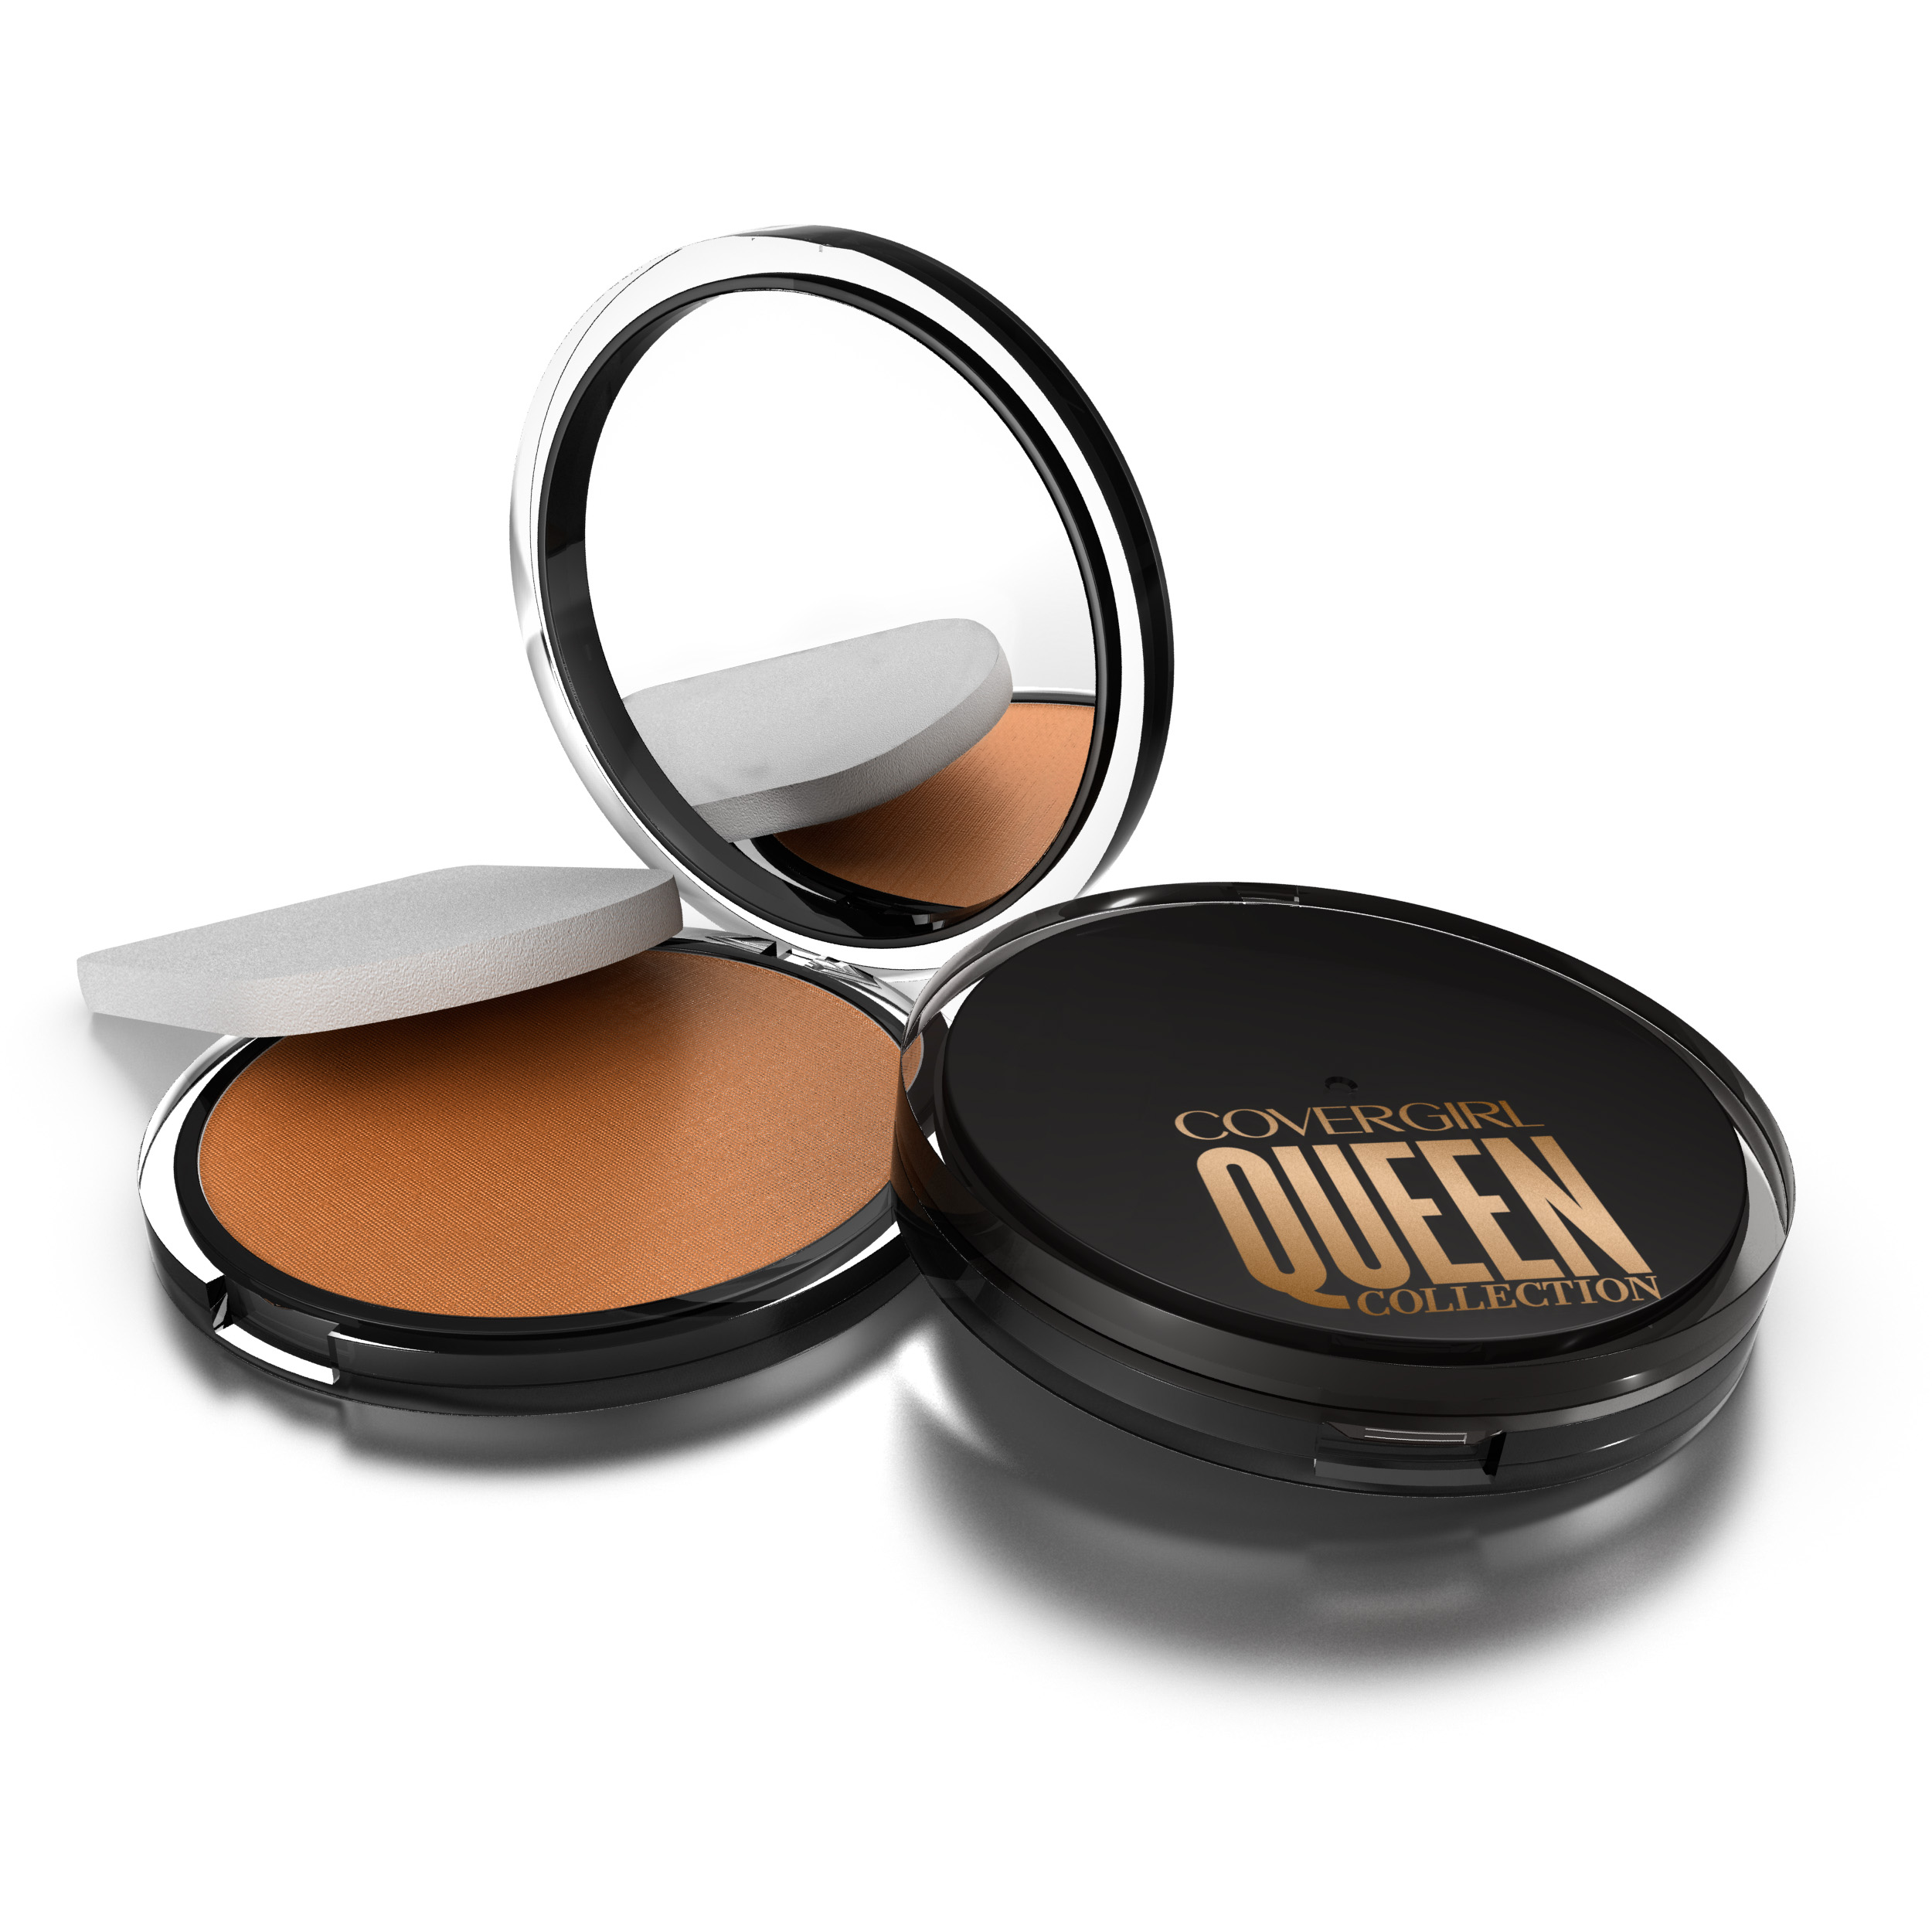 COVERGIRL Queen Lasting Matte Pressed Powder Foundation, Light